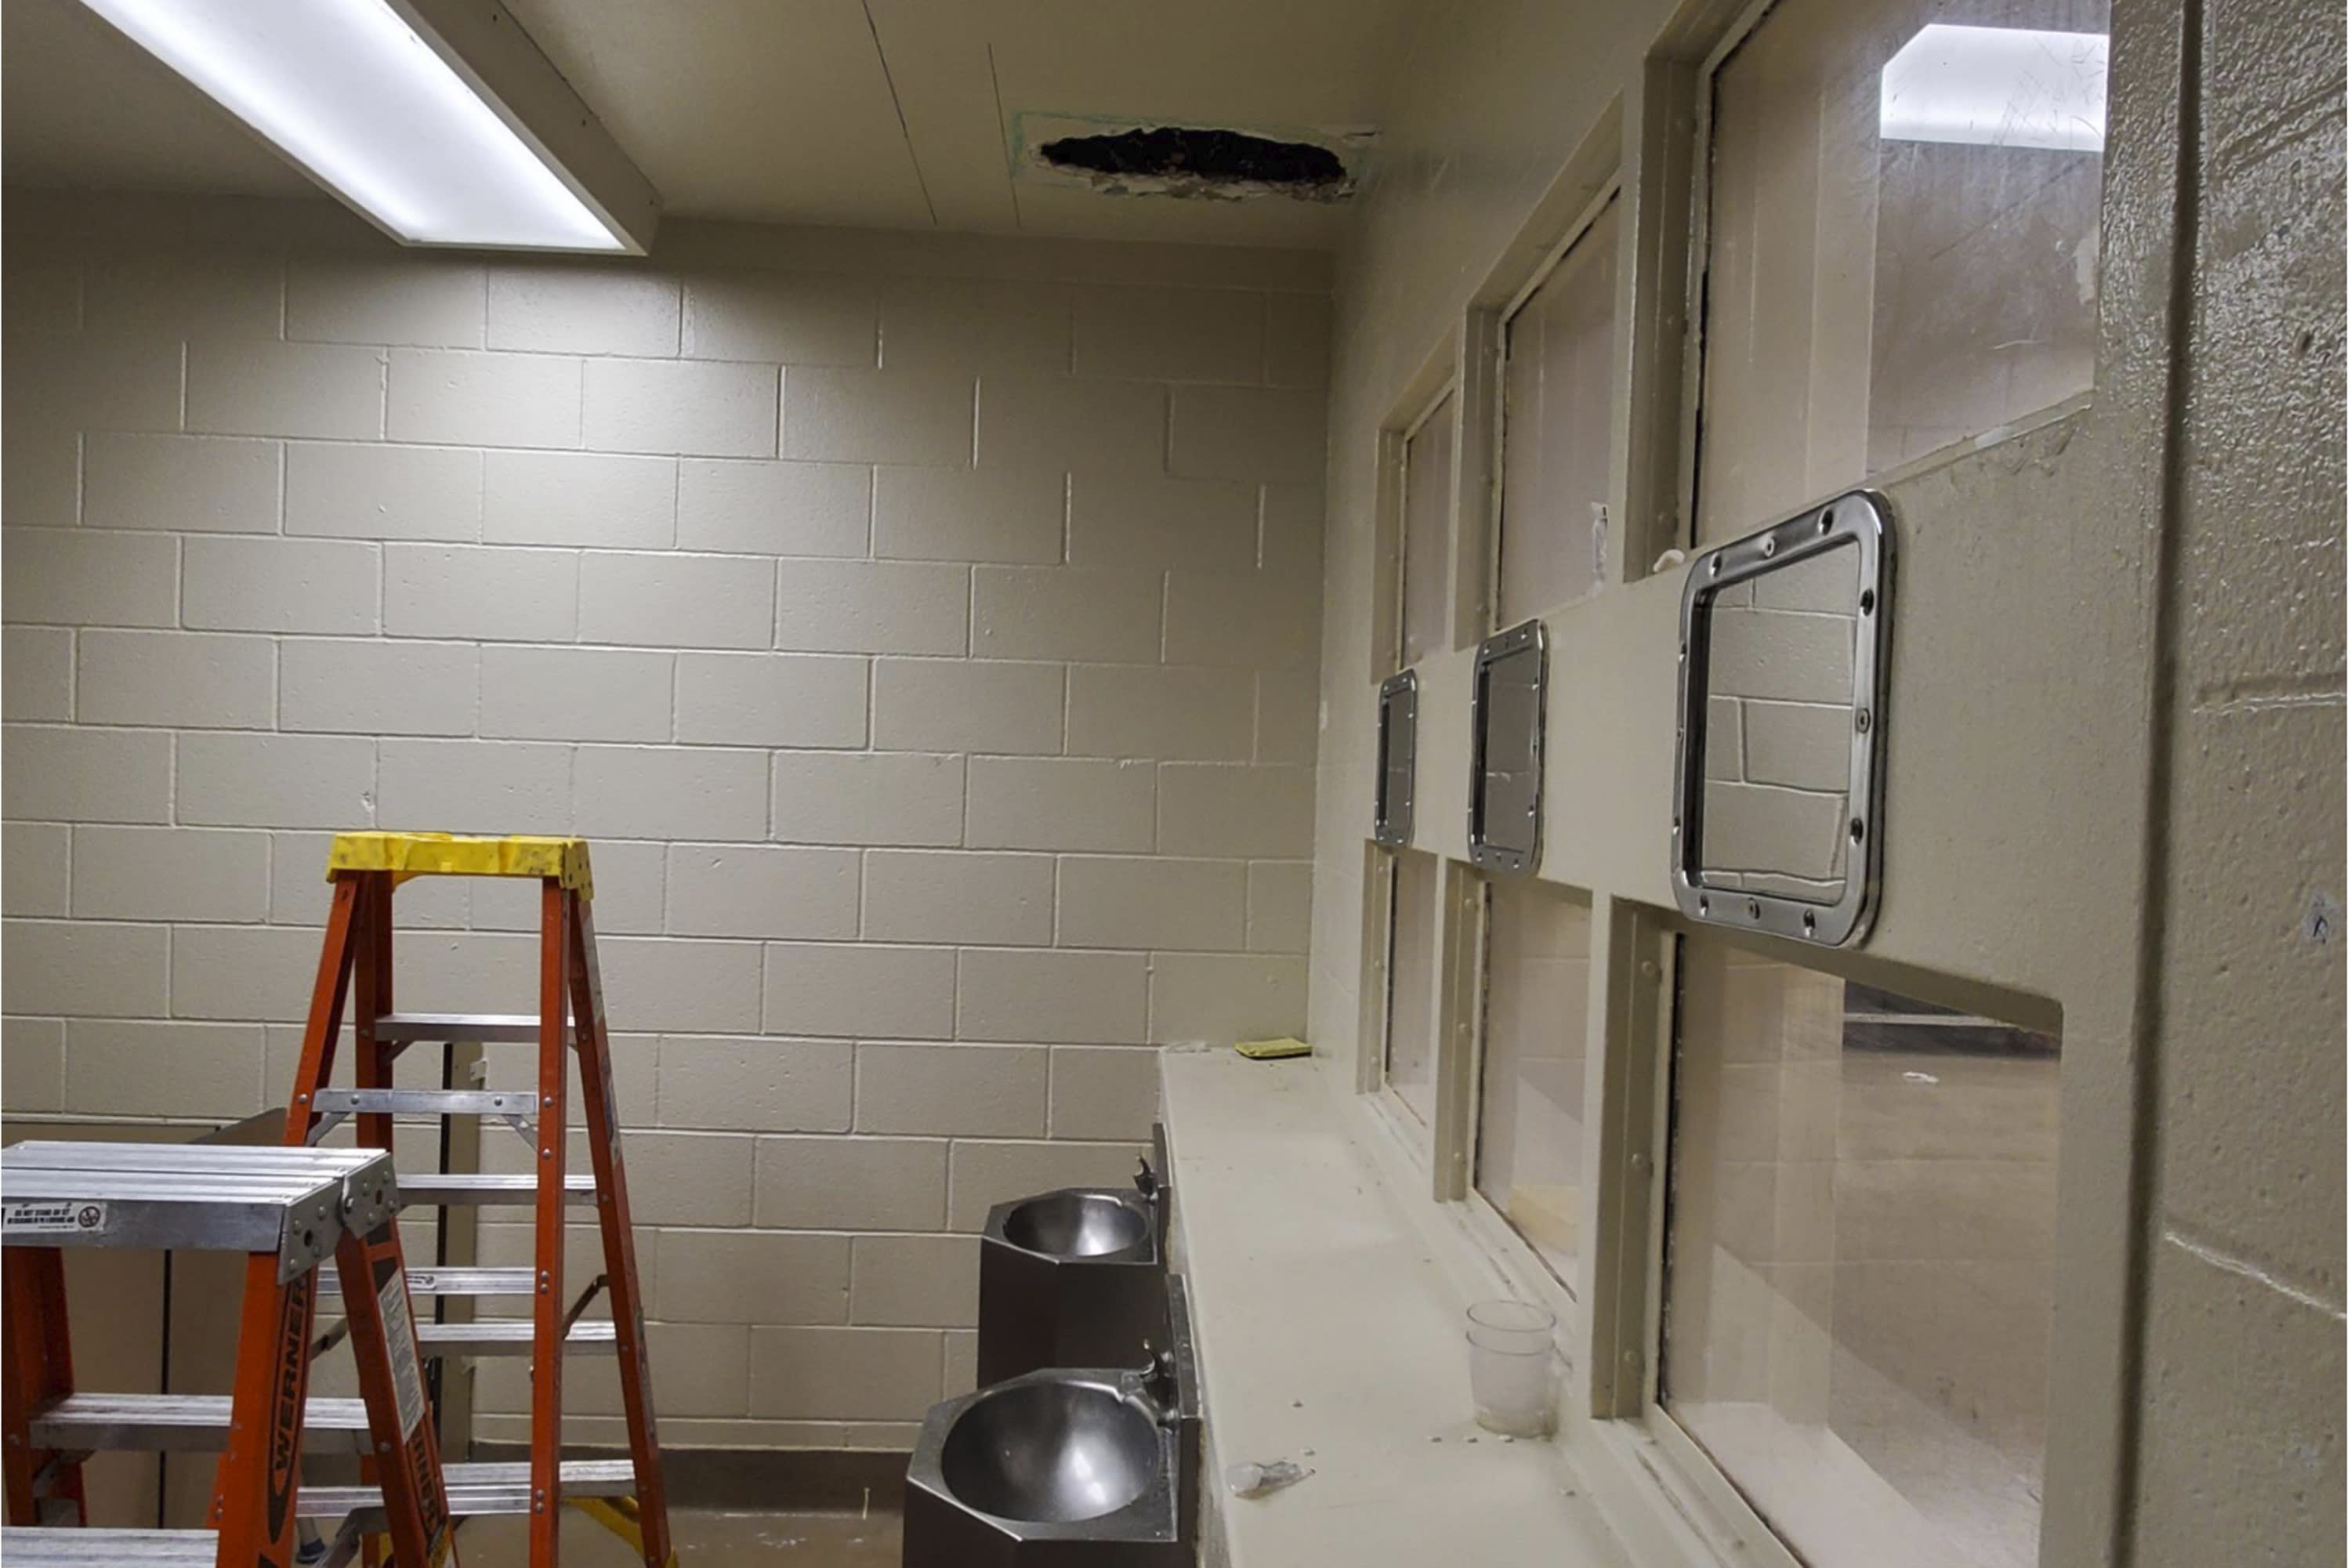 Jail Bathroom Had a Blind Spot. 2 Murder Suspects Found It